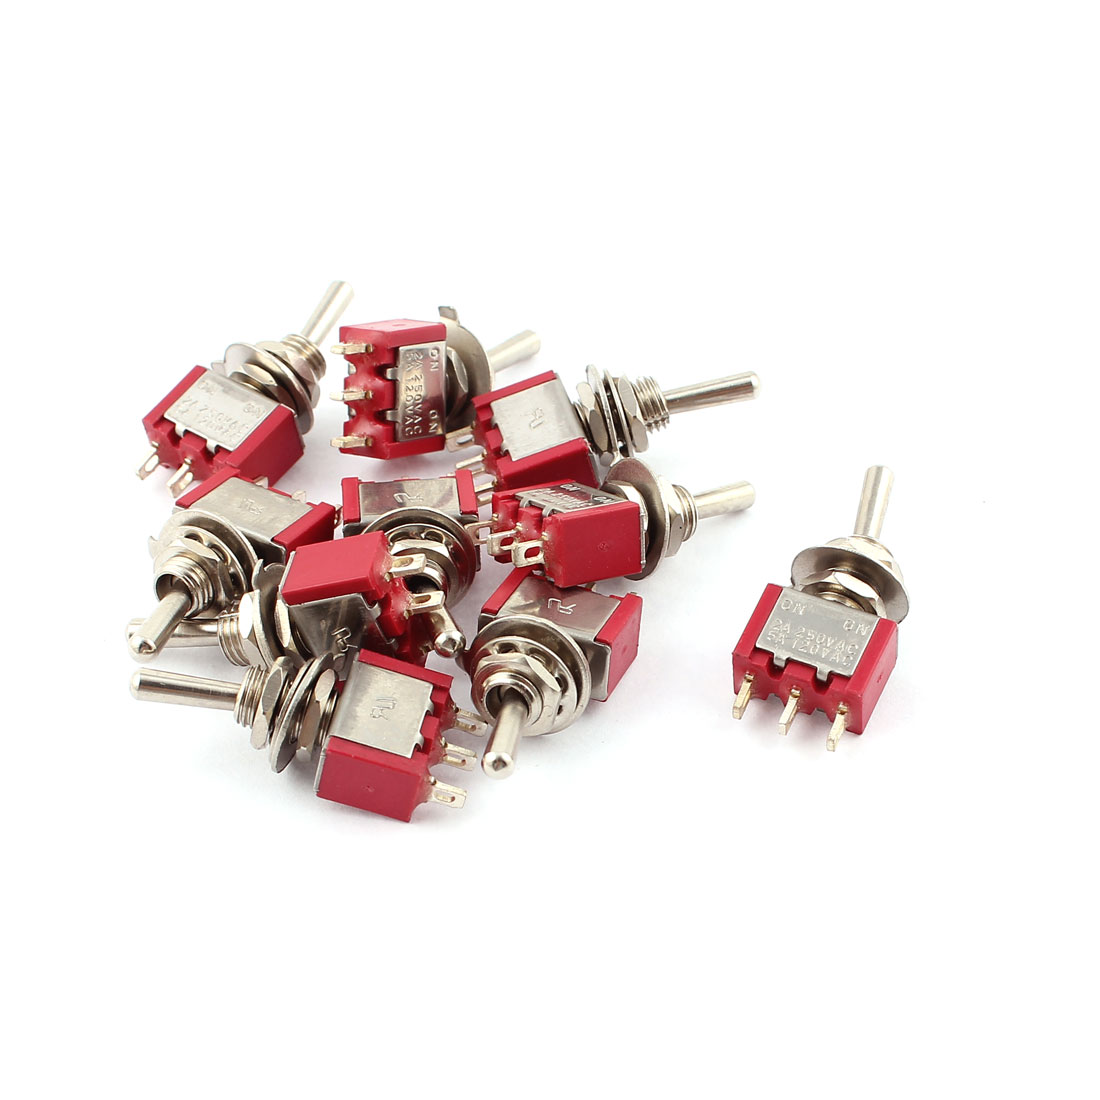 AC 250V/2A 120V/5A SPDT ON/ON 5.7mm Thread 3 Terminals Toggle Switch 10Pcs Red